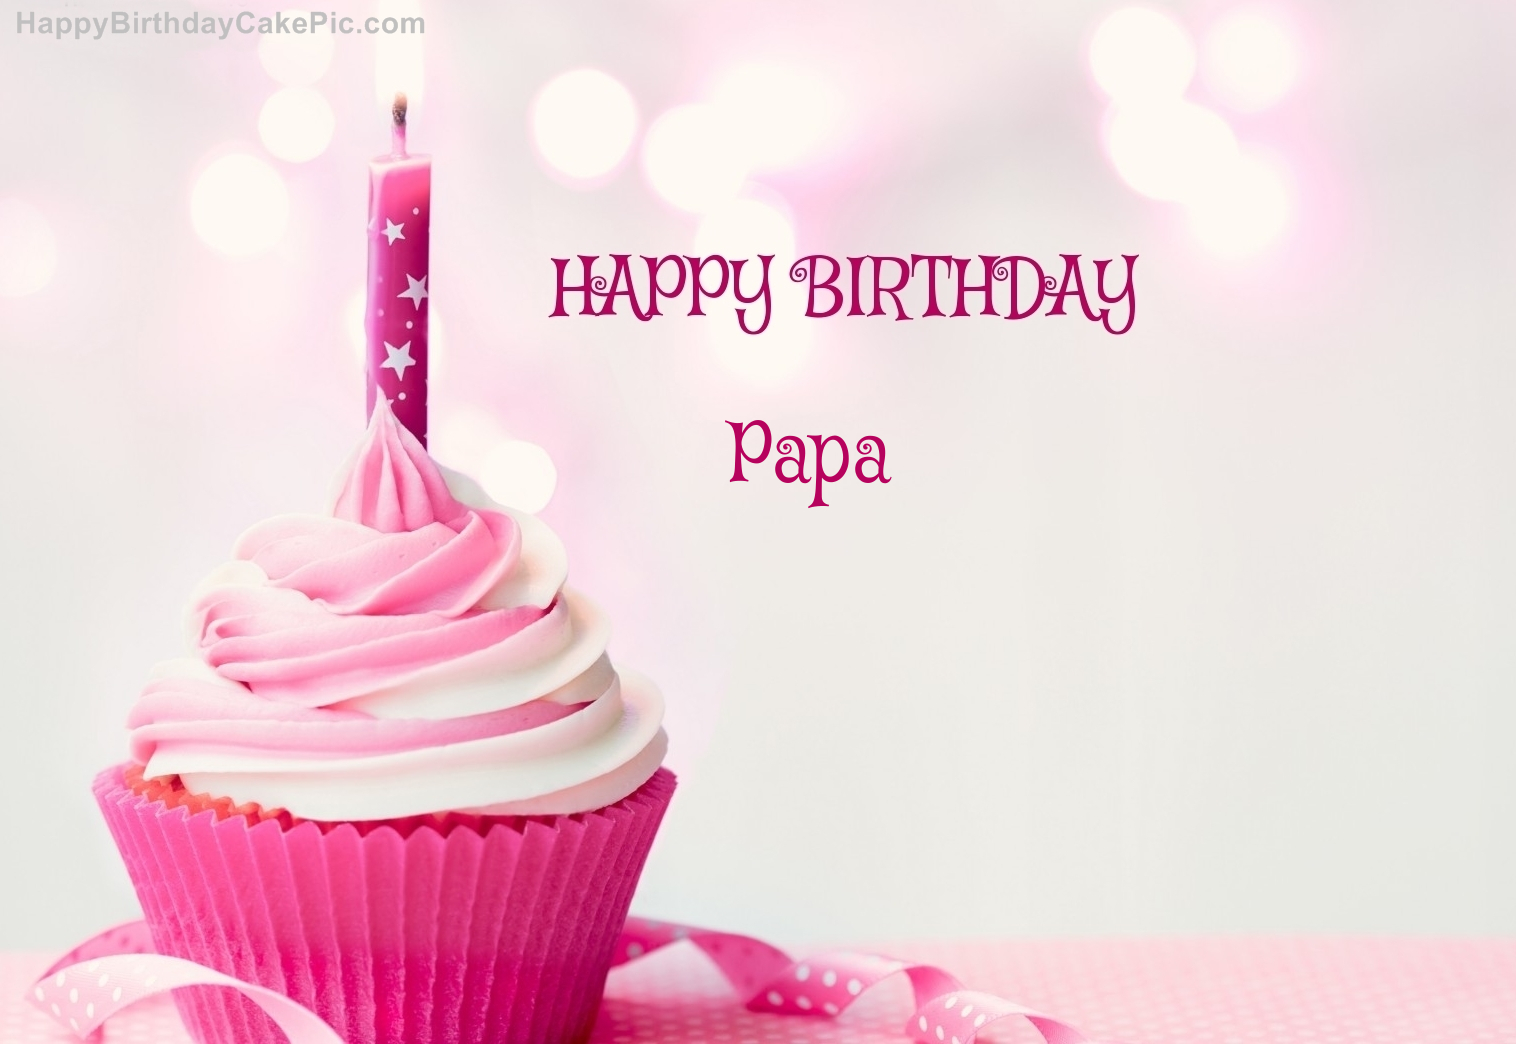 Happy Birthday Cupcake Candle Pink Cake For Papa